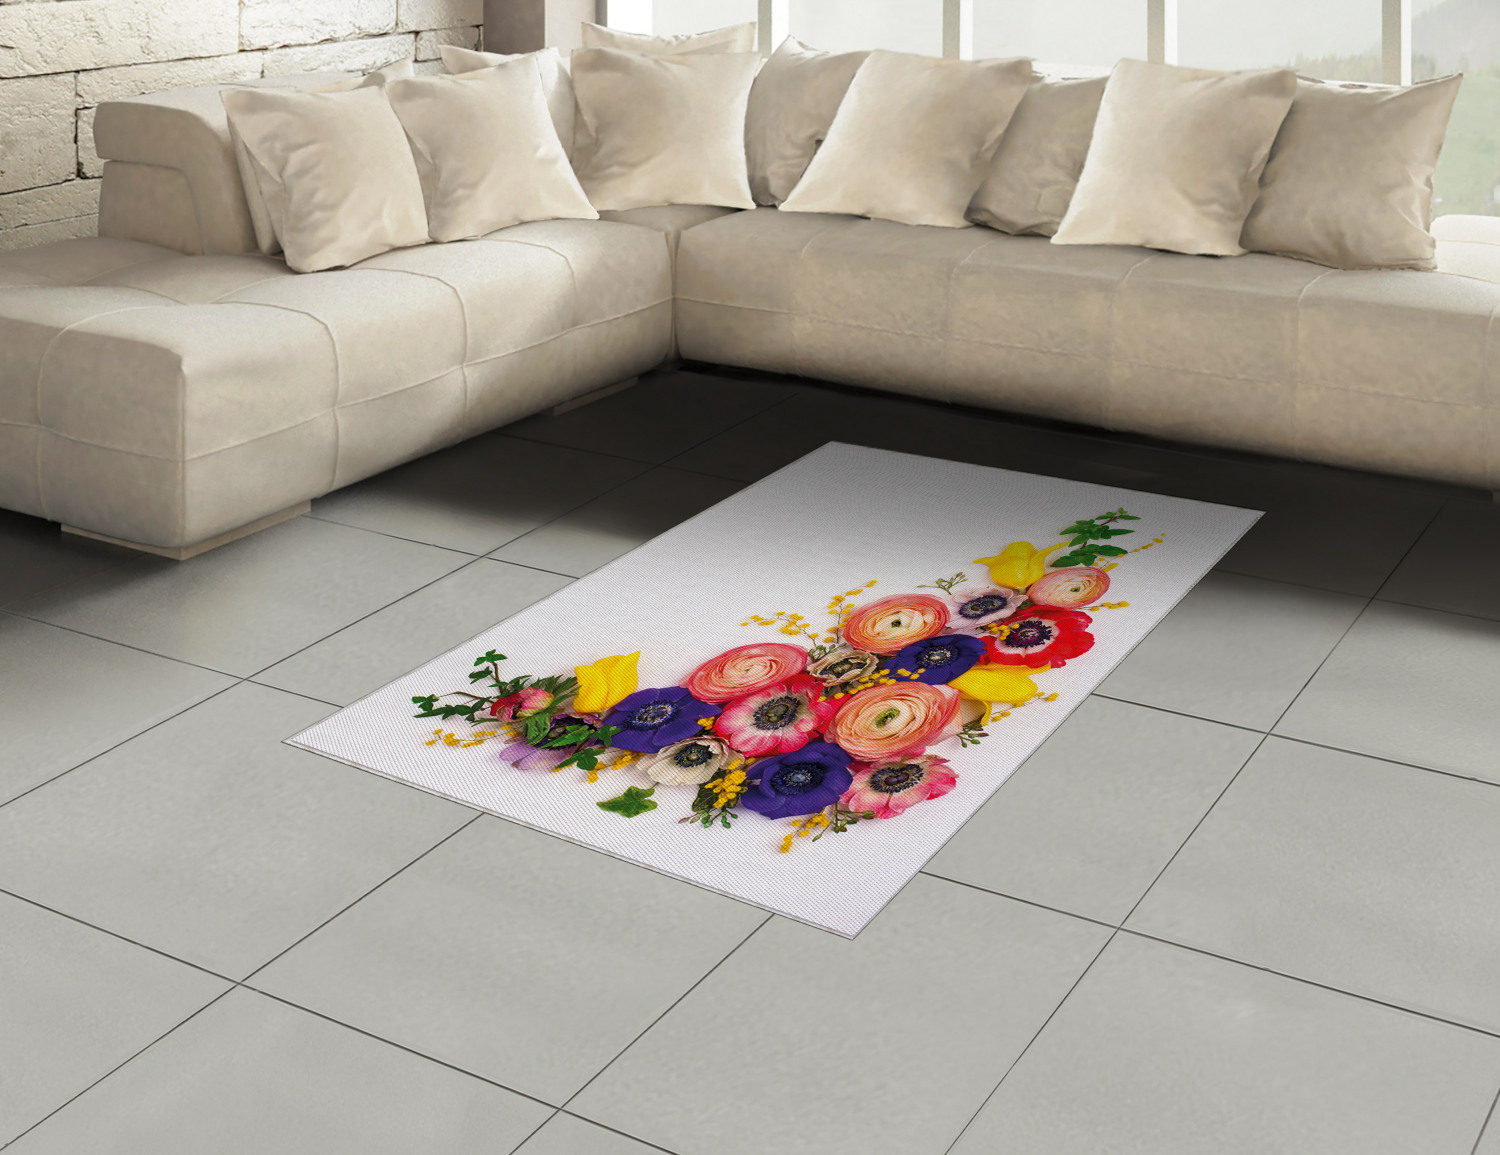 Anemone-Flower-Area-Rug-Decor-Flat-Woven-Accent-Rug-Home-Decor-2-Sizes-Ambesonne thumbnail 18